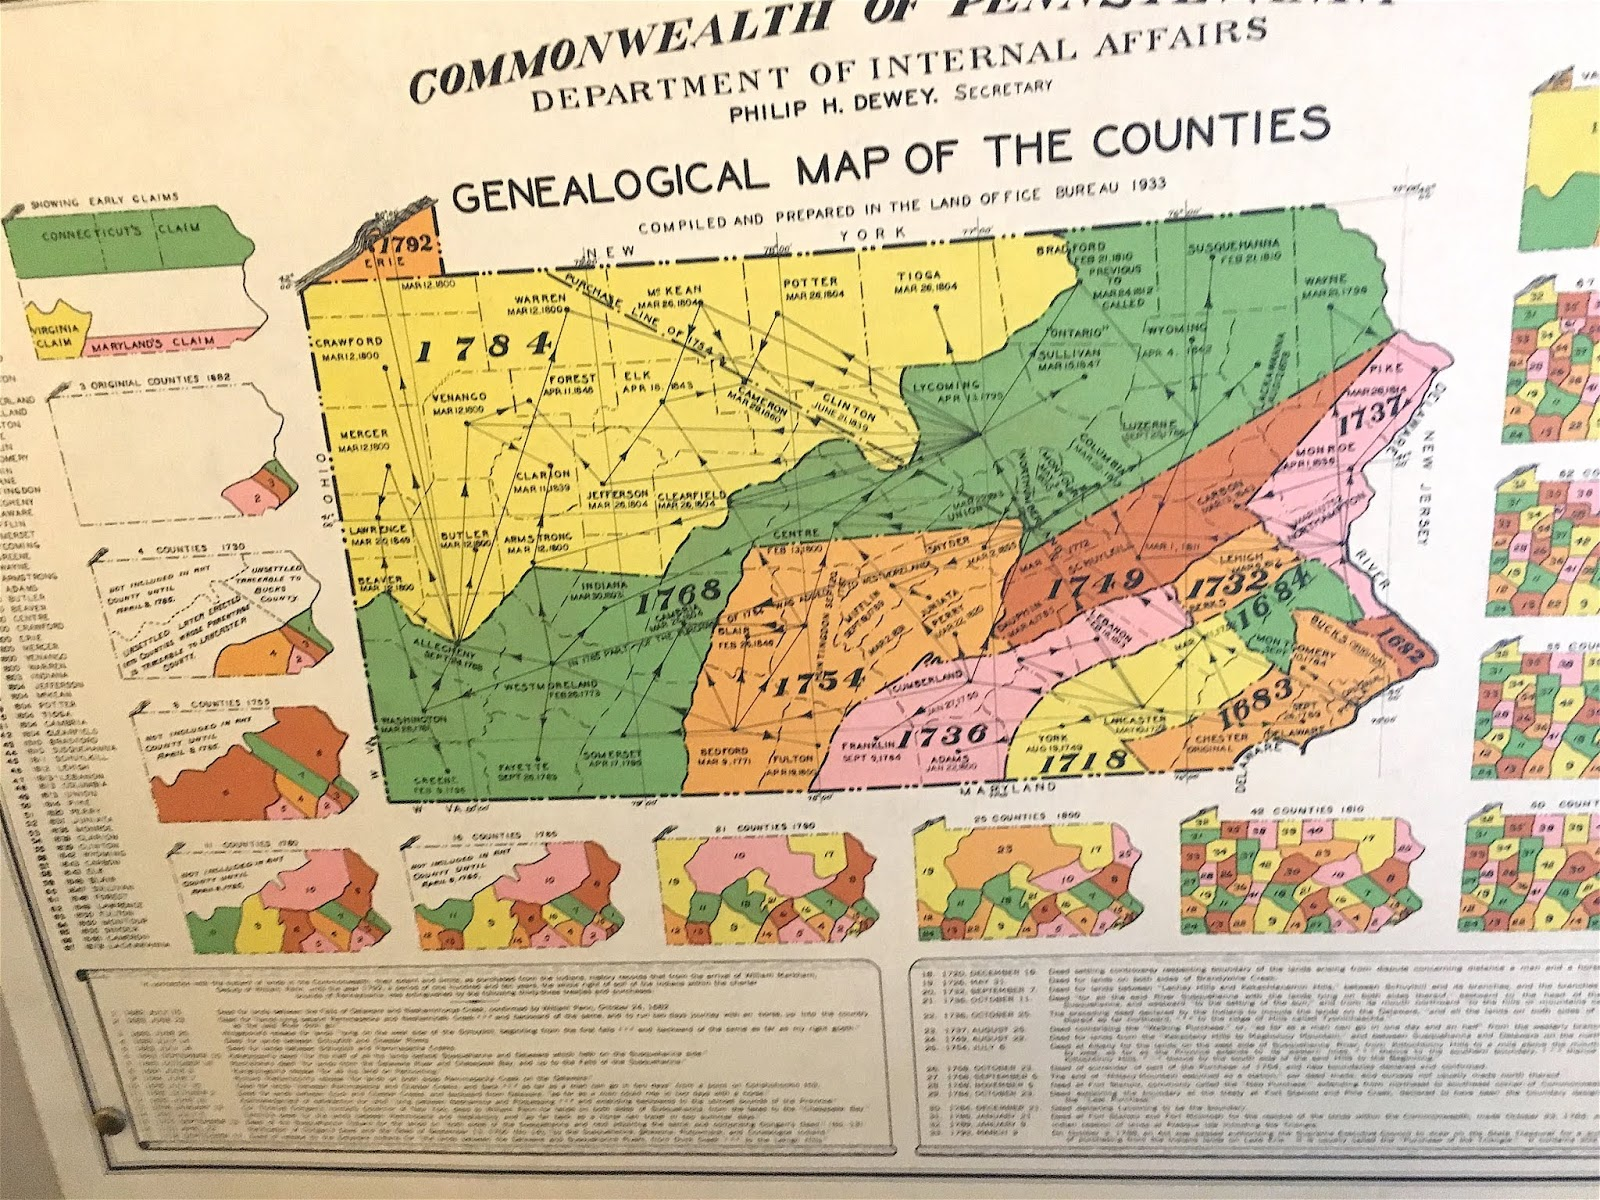 this is a colorful map on the wall in pottsville that shows the west ward migration from the 1600 s near philadelphia in pre colonial times to the